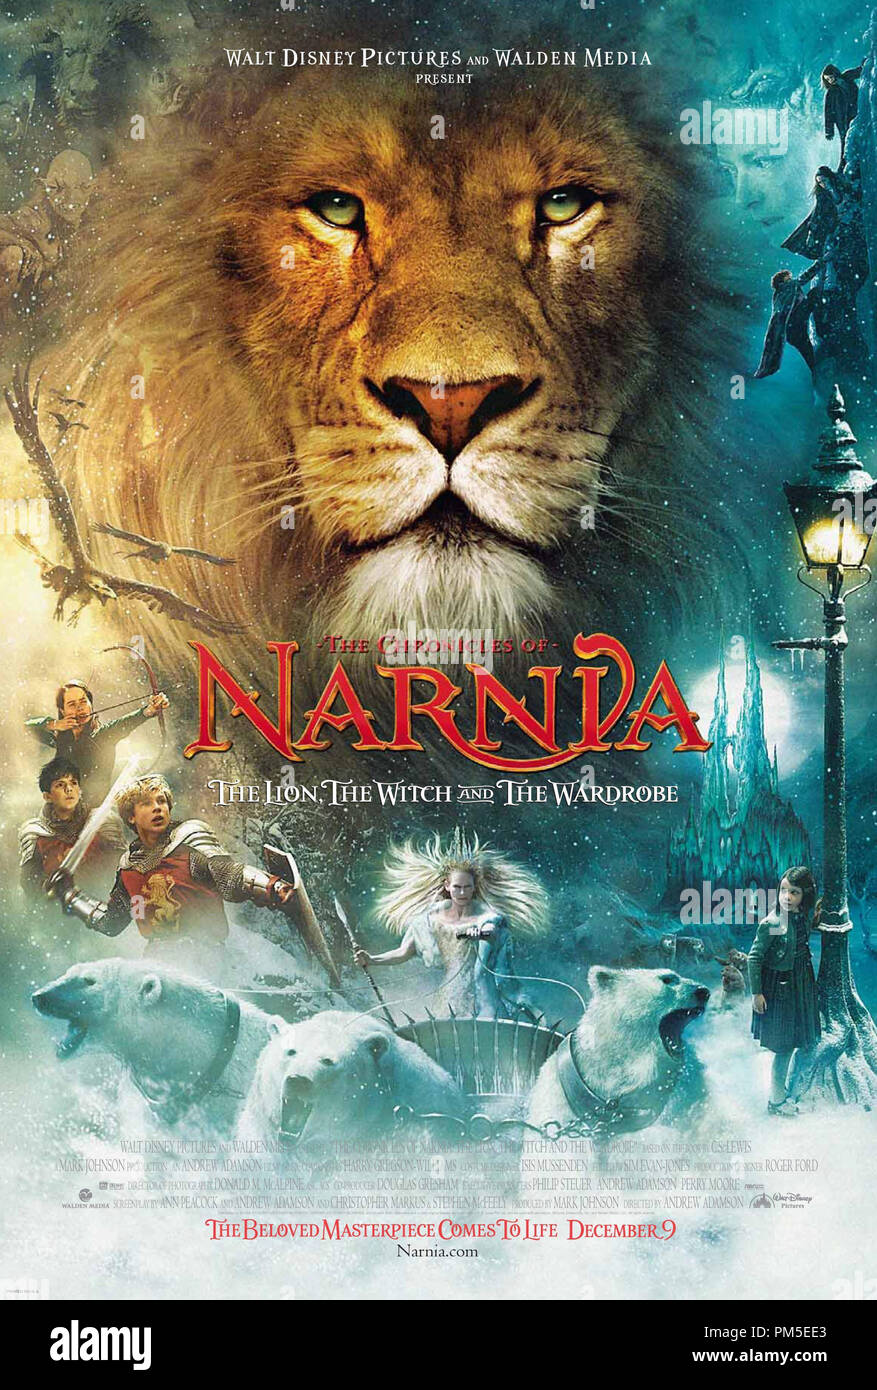 Poster Art from 'The Chronicles of Narnia: The Lion, the Witch and the Wardrobe' Poster © 2005 Walt Disney Pictures  File Reference # 30736933THA  For Editorial Use Only -  All Rights Reserved - Stock Image